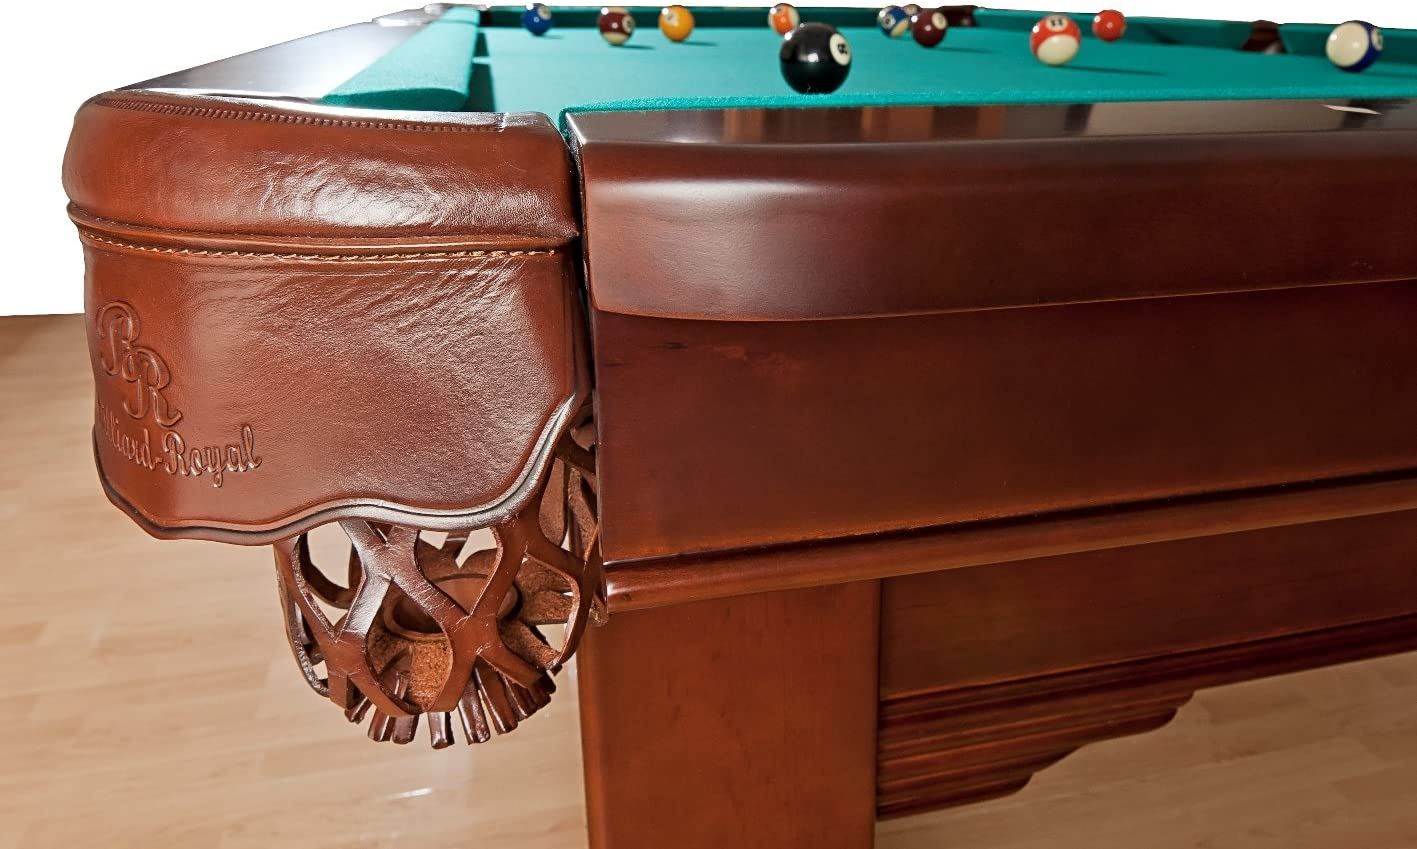 Billiard-Royal Mesa de Billar Modelo Magdalena – 9 Ft, Verde ...